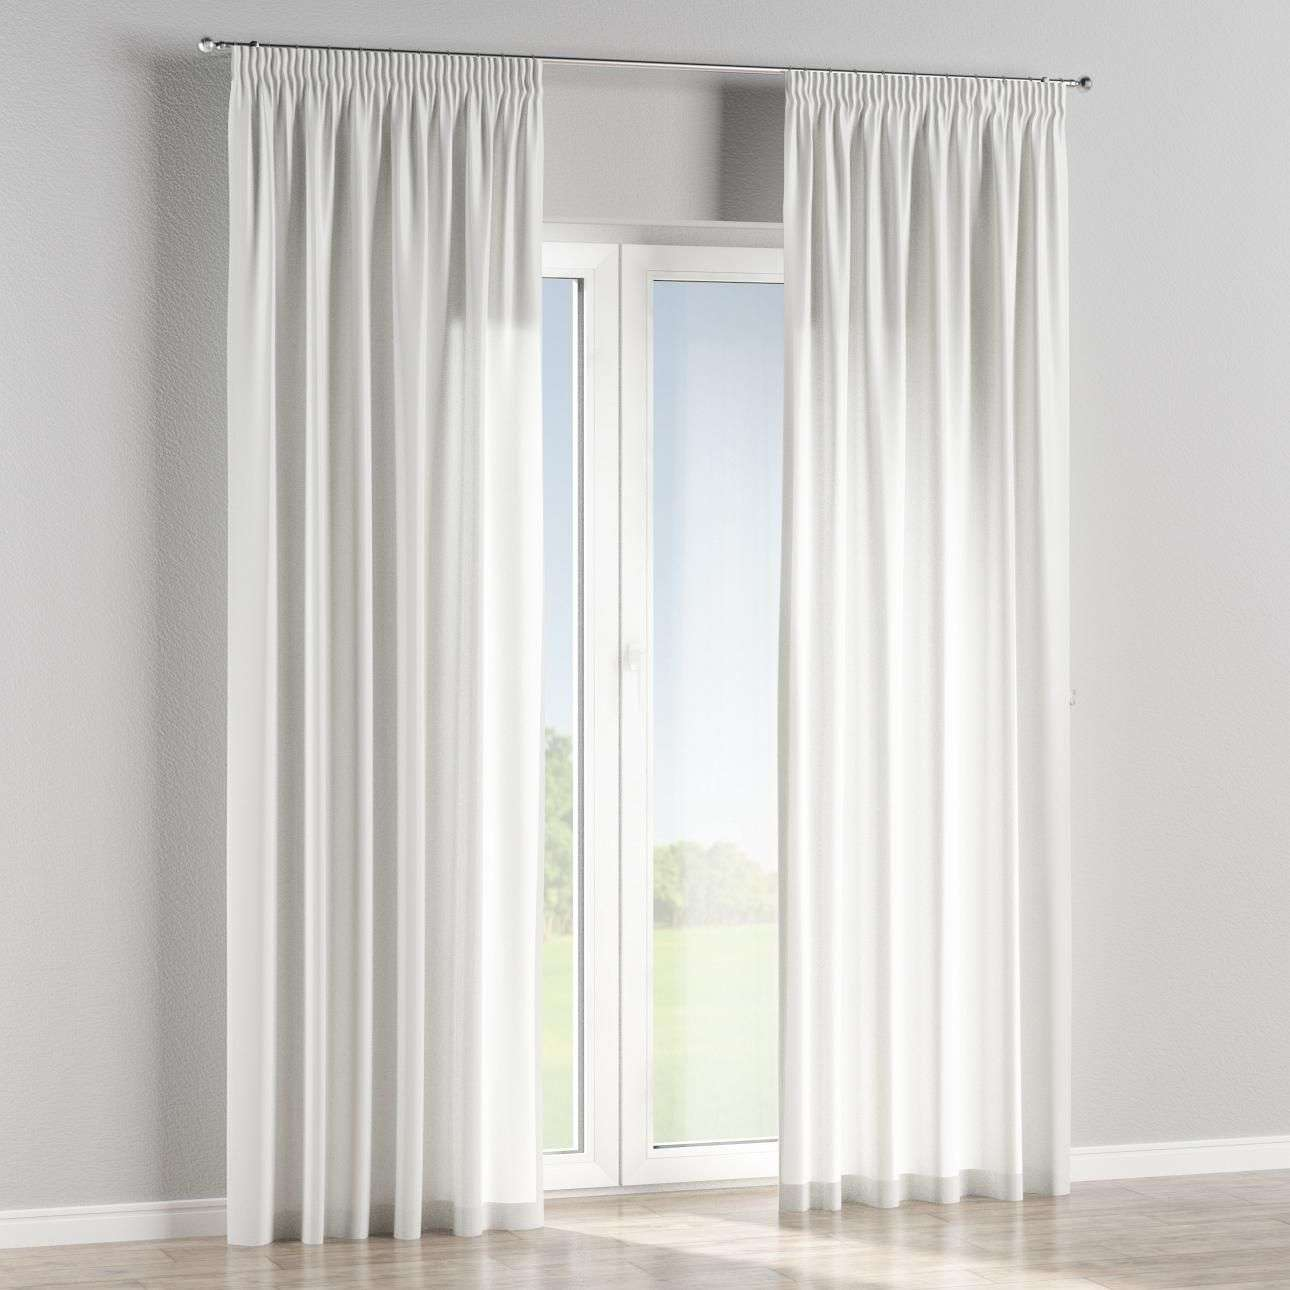 Pencil pleat curtains in collection Cardiff, fabric: 136-28